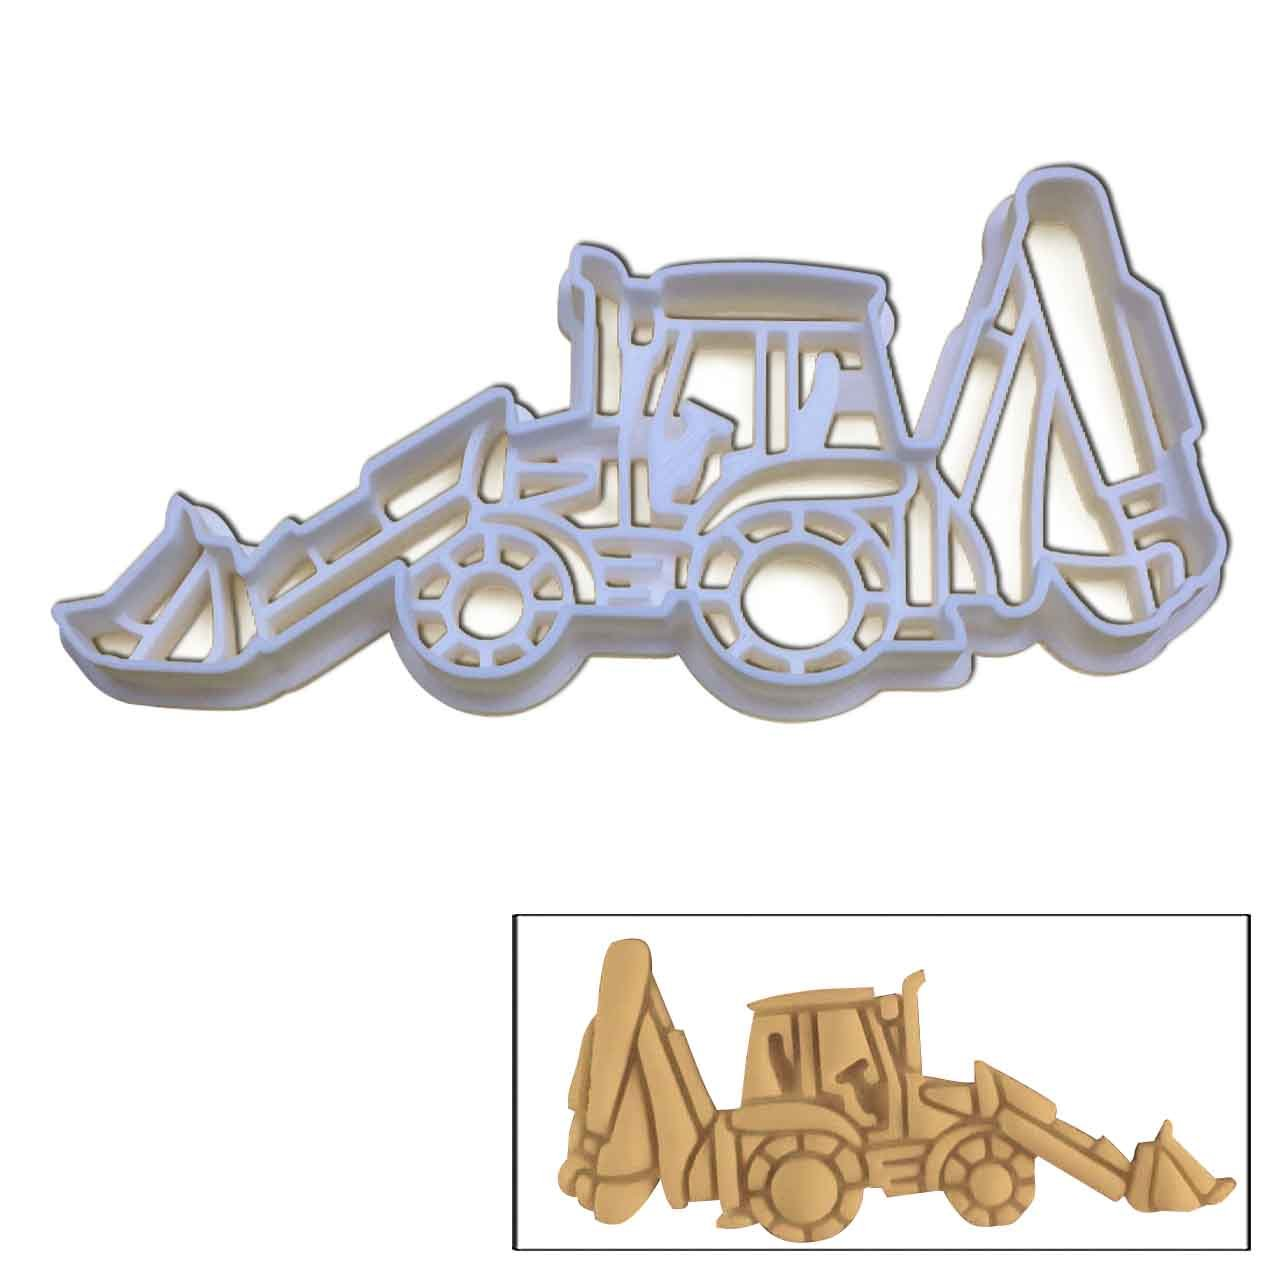 Excavator Digger cookie cutter, 1 pc, Ideal for young truck enthusiasts and construction gurus